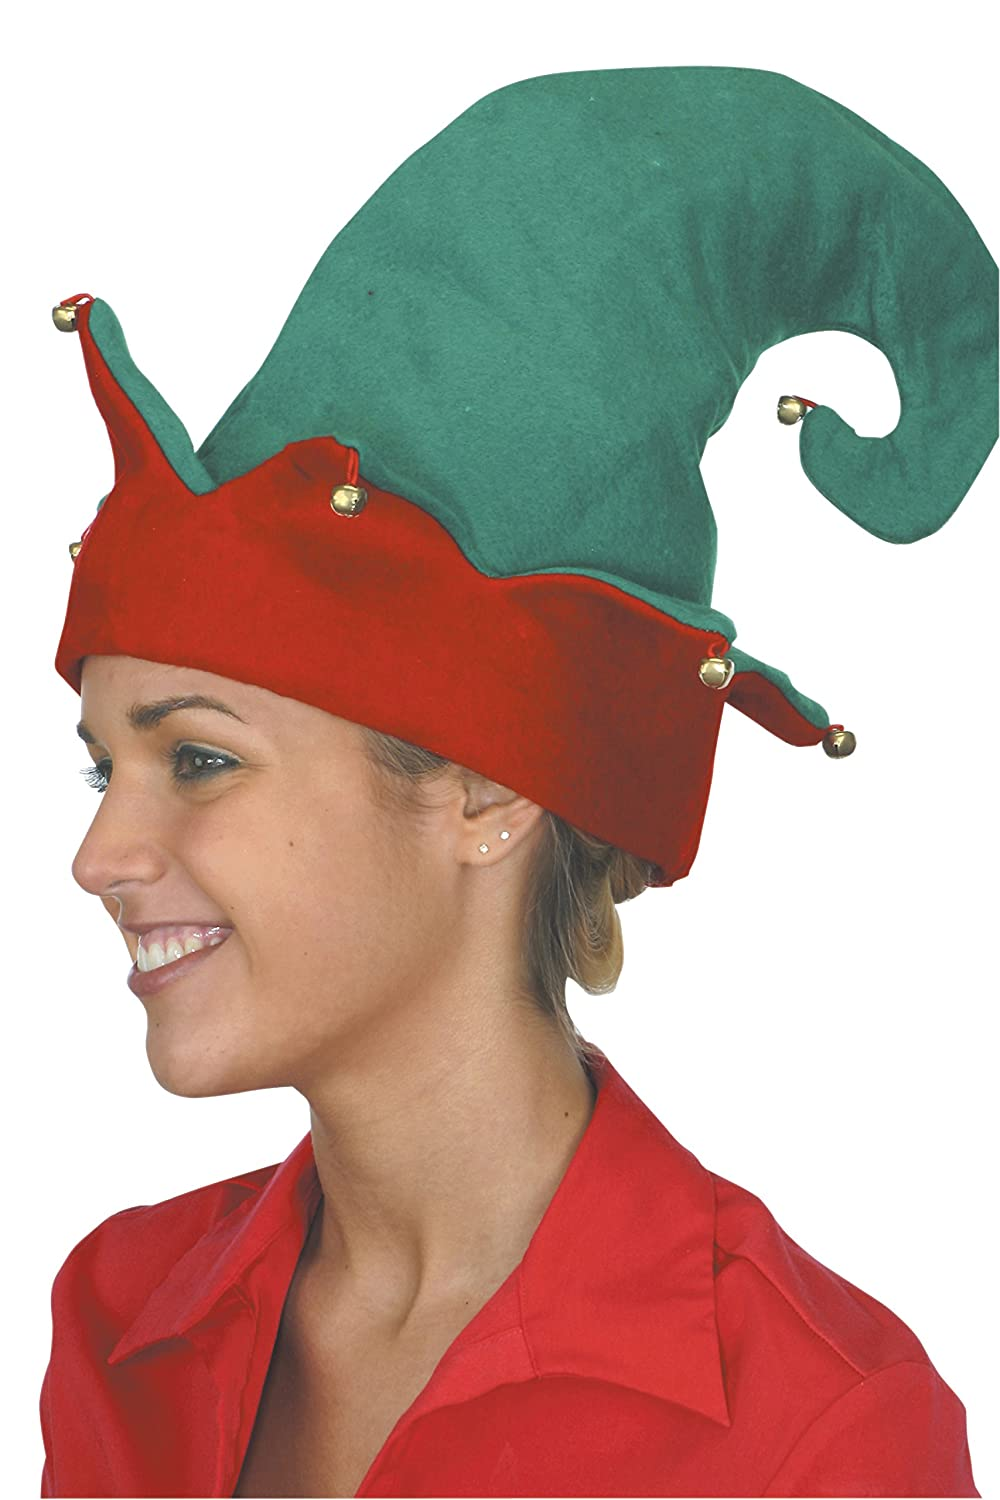 d343a7b5cf092 Amazon.com  Jacobson Hat Company Adult Elf Hat  Clothing